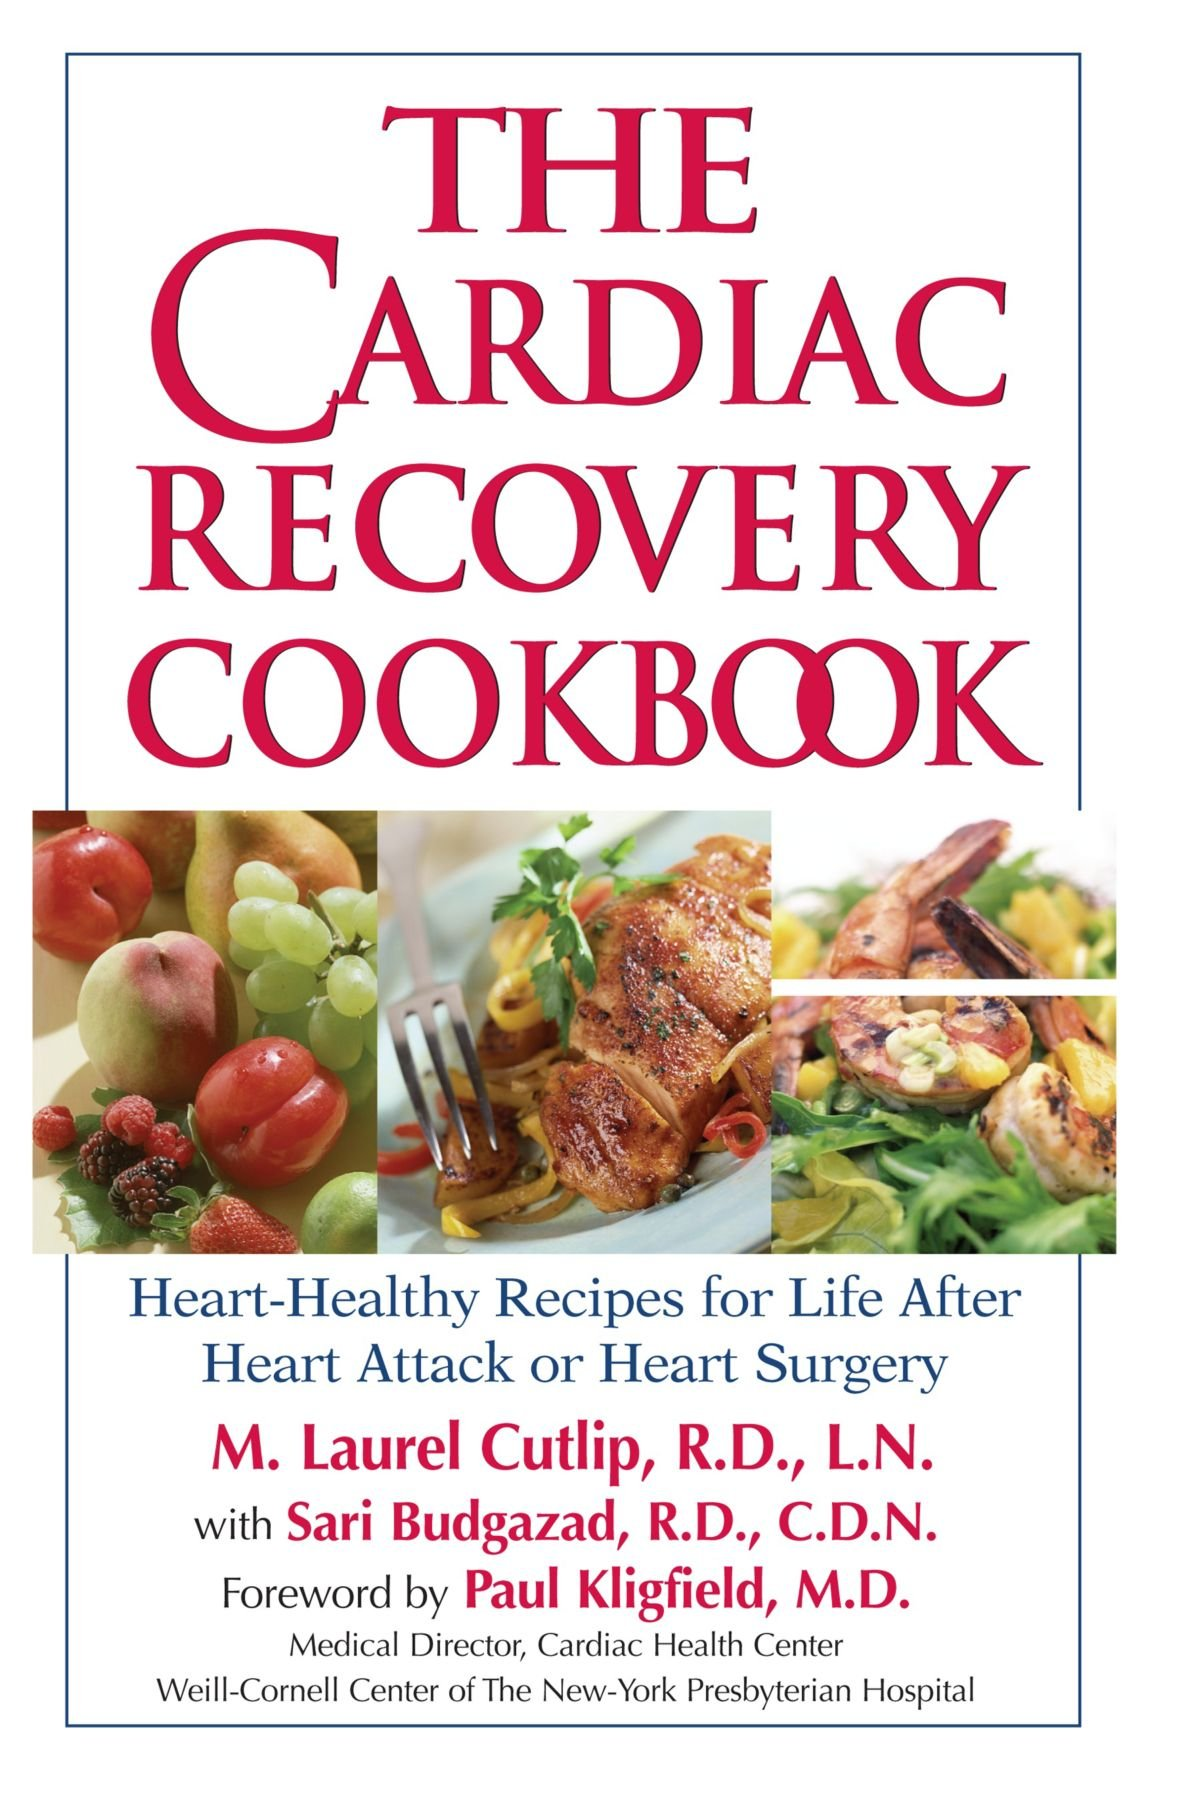 Cardiac Recovery Cookbook Healthy Recipes product image